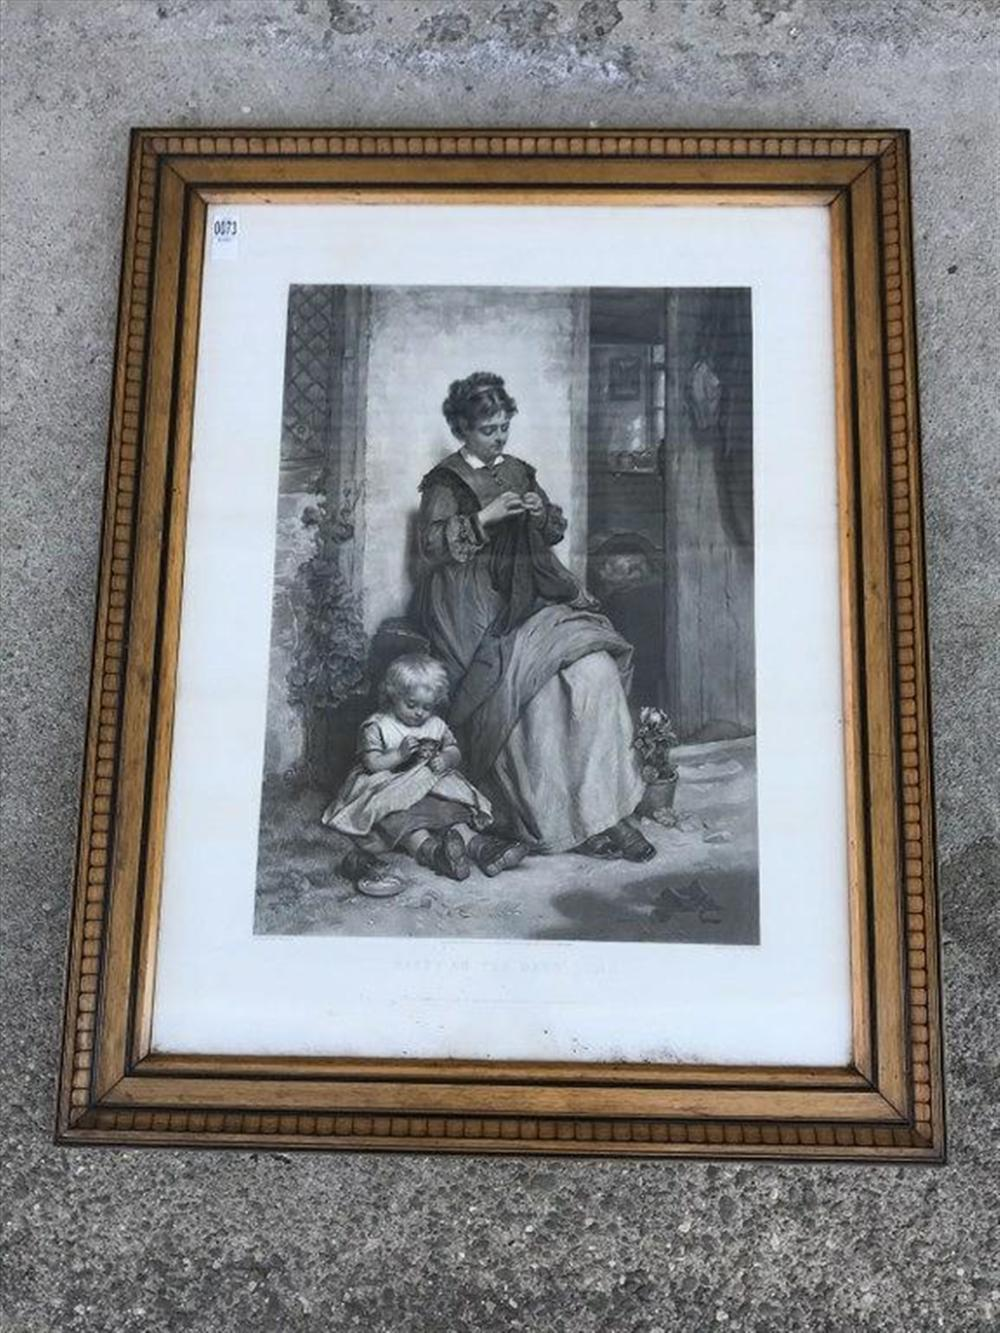 "VICTORIAN LARGE PRINT HAPPY AS THE DAYS LONG, IN PERIOD OAK FRAME, FRAME MEASURES 40"" X 31"",  ENGRAVED BY W H SIMMONS, LONDON, PUBLISHED 1876."